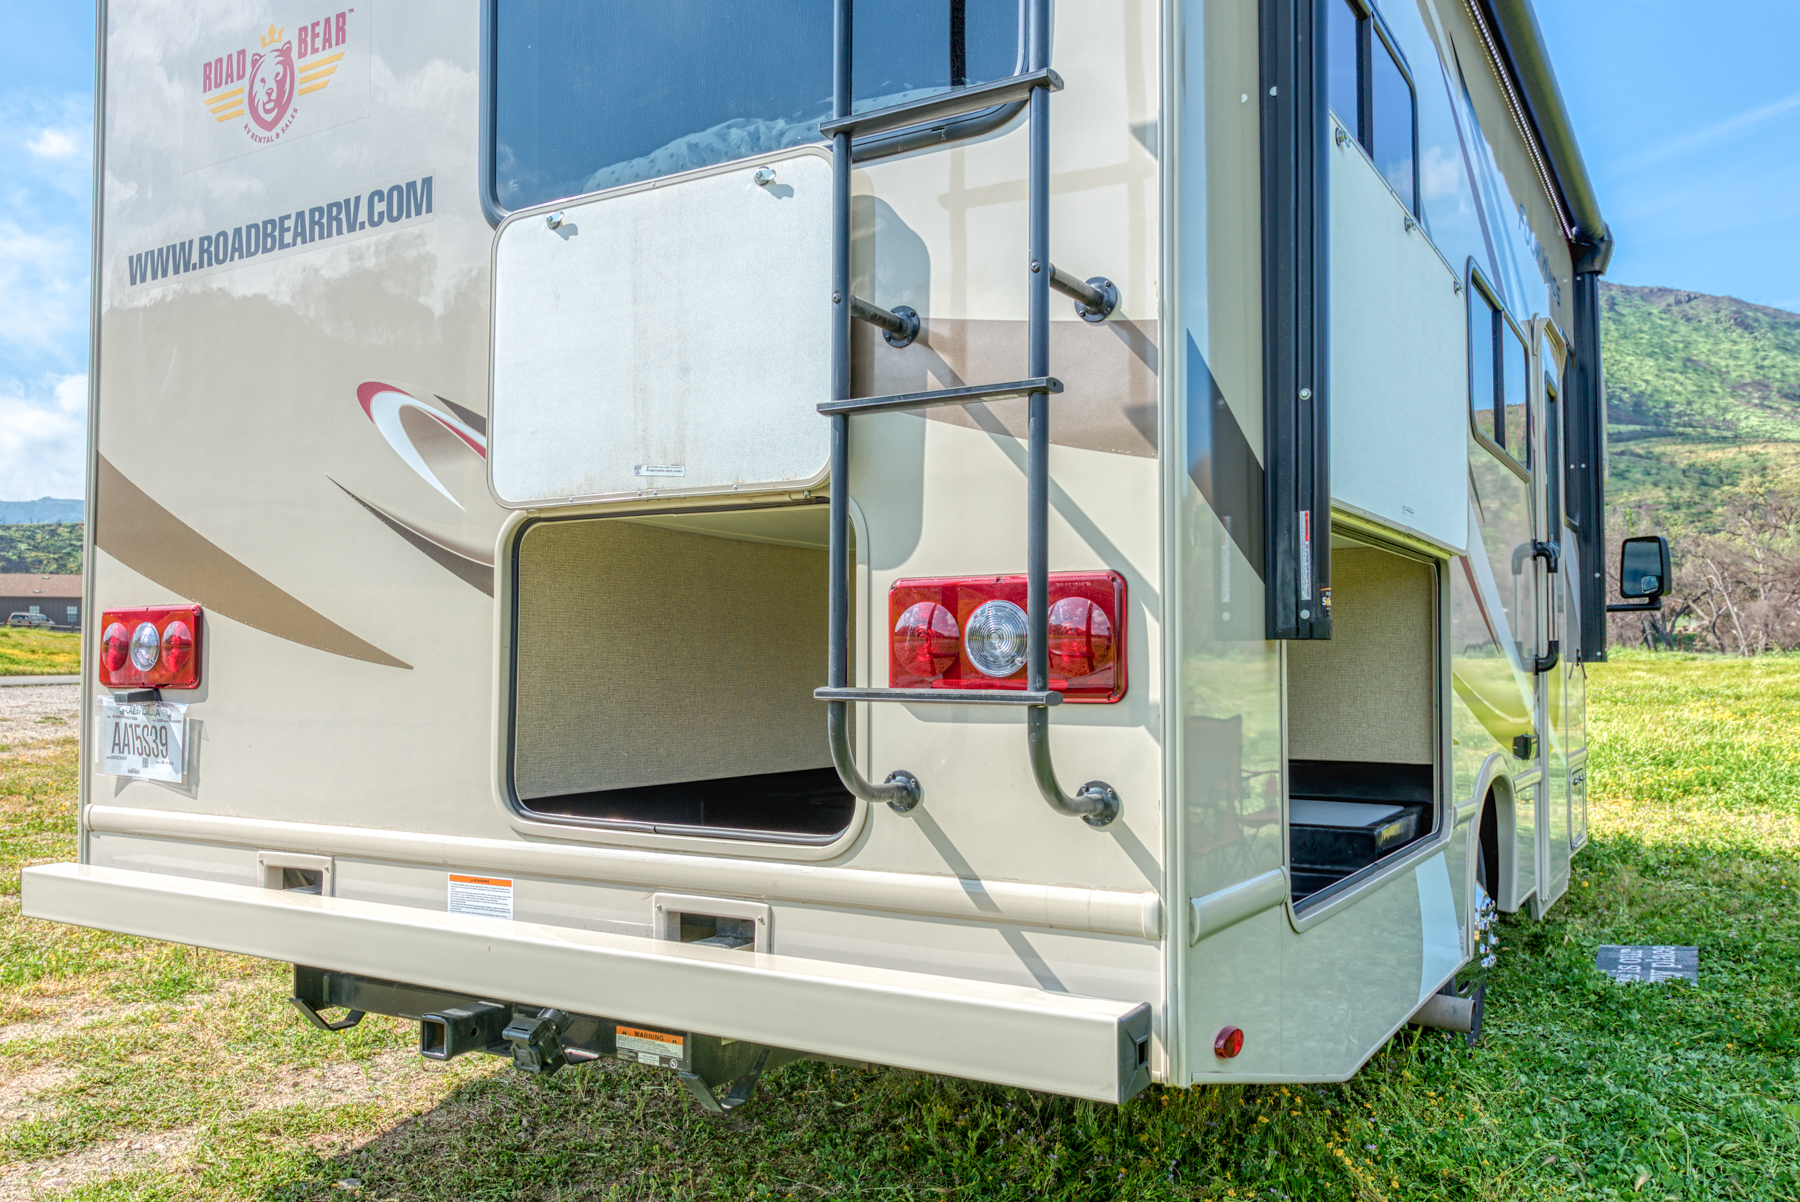 Awesome 22 24 Ft Class C Non Slide Motorhome Rv Rental Usa Download Free Architecture Designs Scobabritishbridgeorg